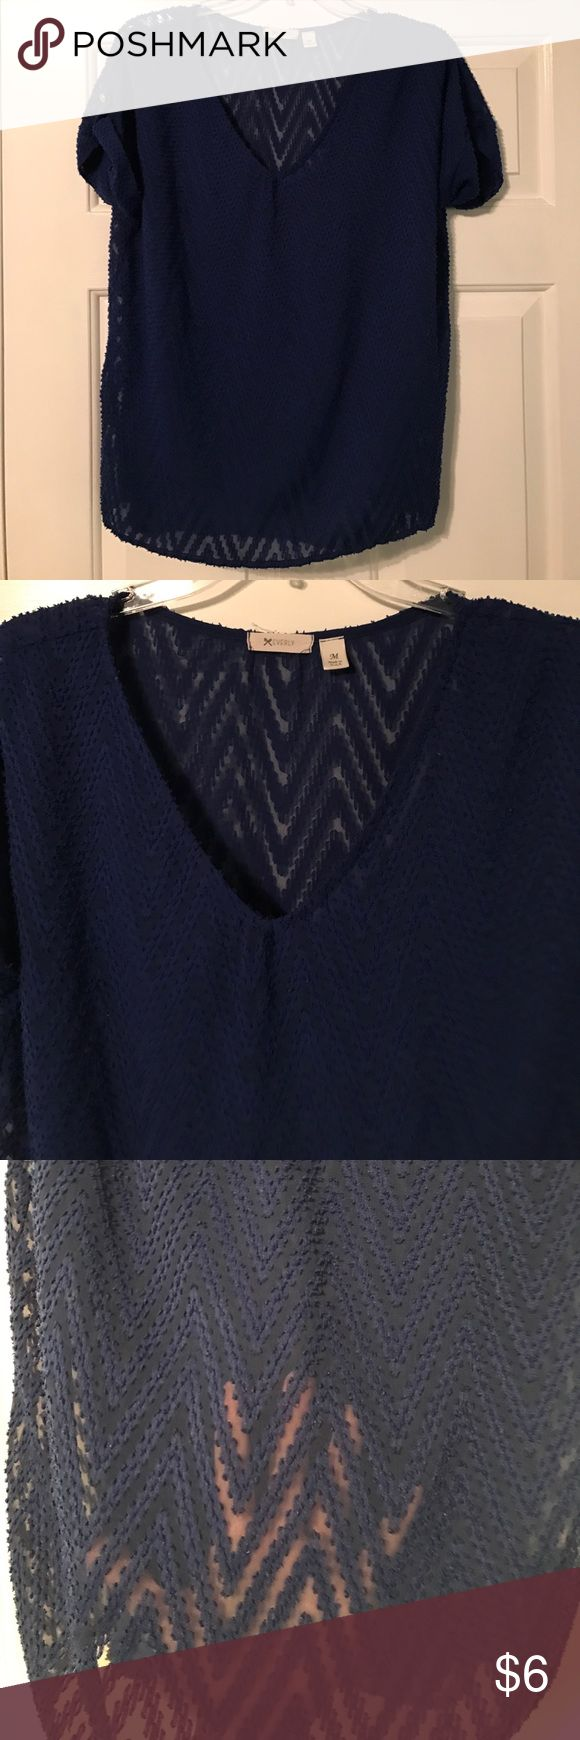 Everly blue chevron top Sheer royal blue chevron top. Fabric design is raised/dimensional. Gold buttons on sleeves Everly Tops Blouses